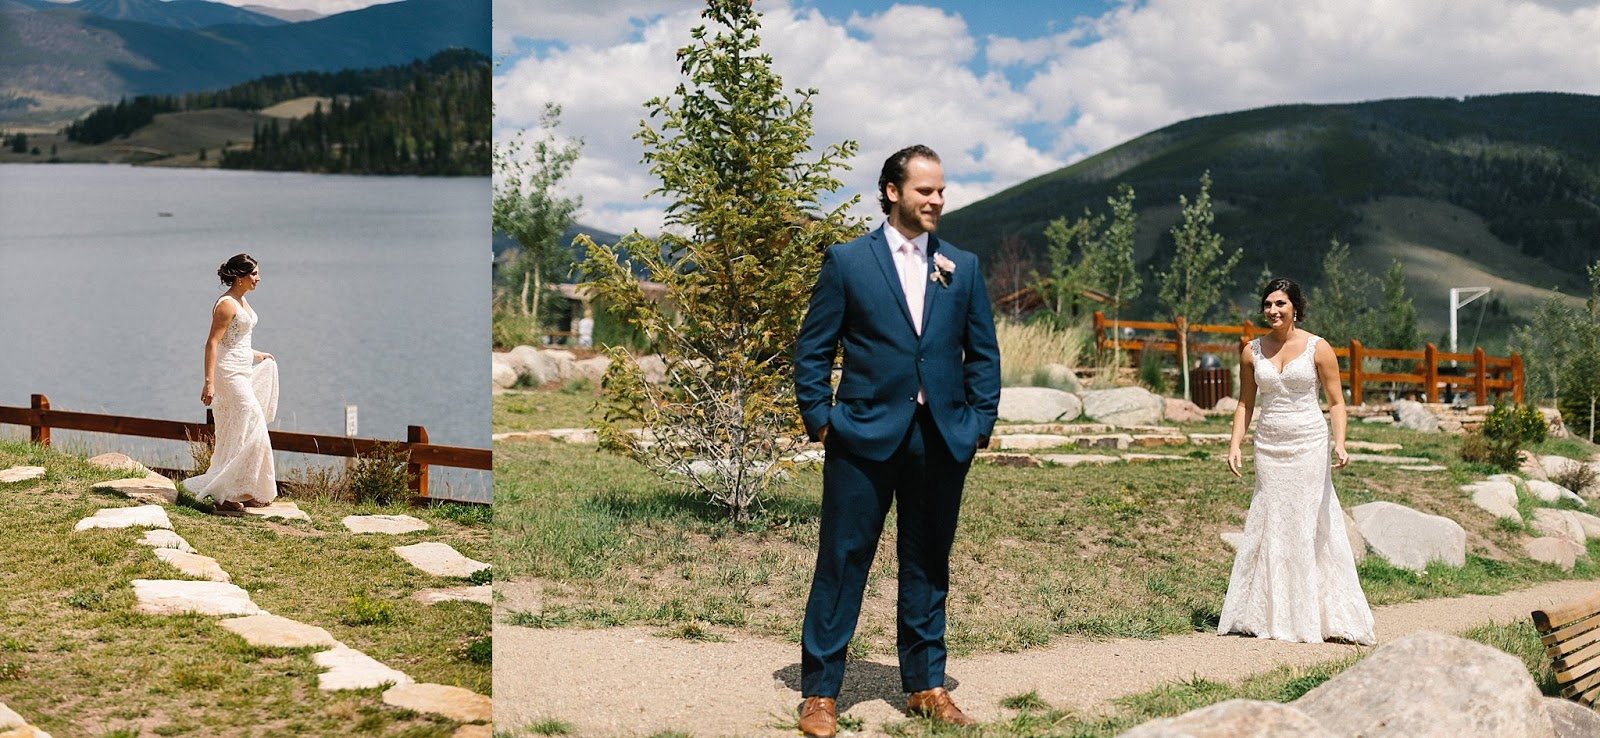 Sapphire Point Colorado Wedding // James + Steph - Ali